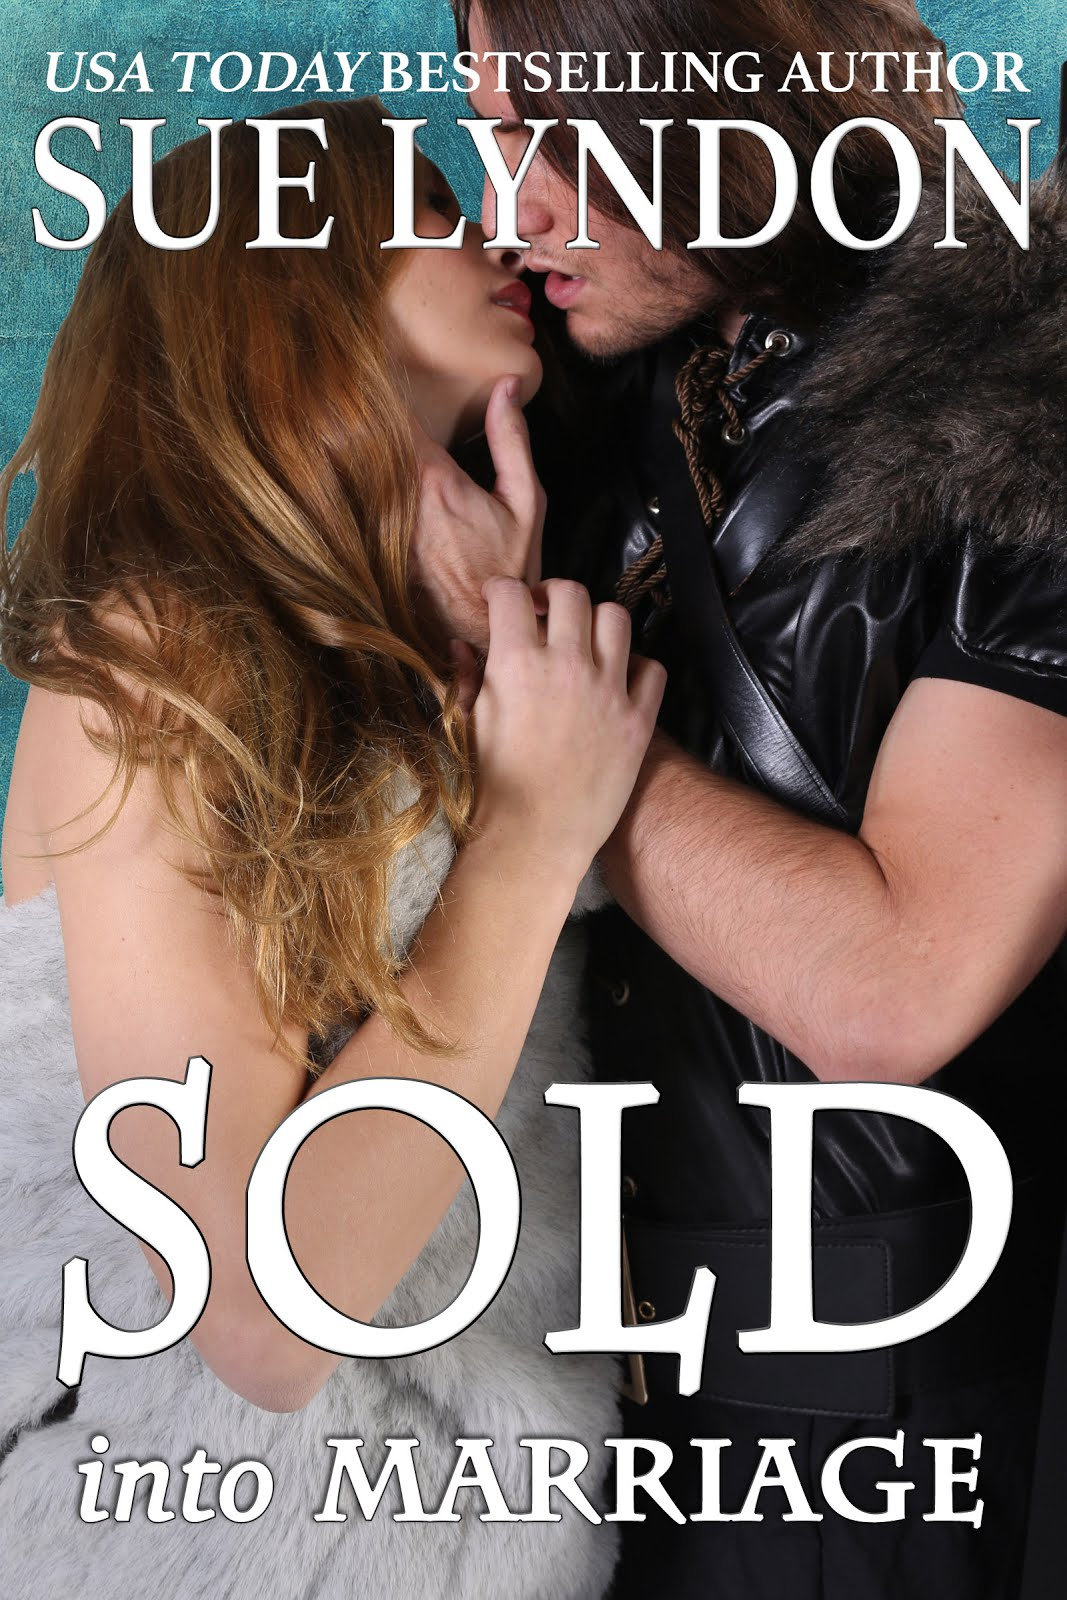 FREE w/ Kindle Unlimited!